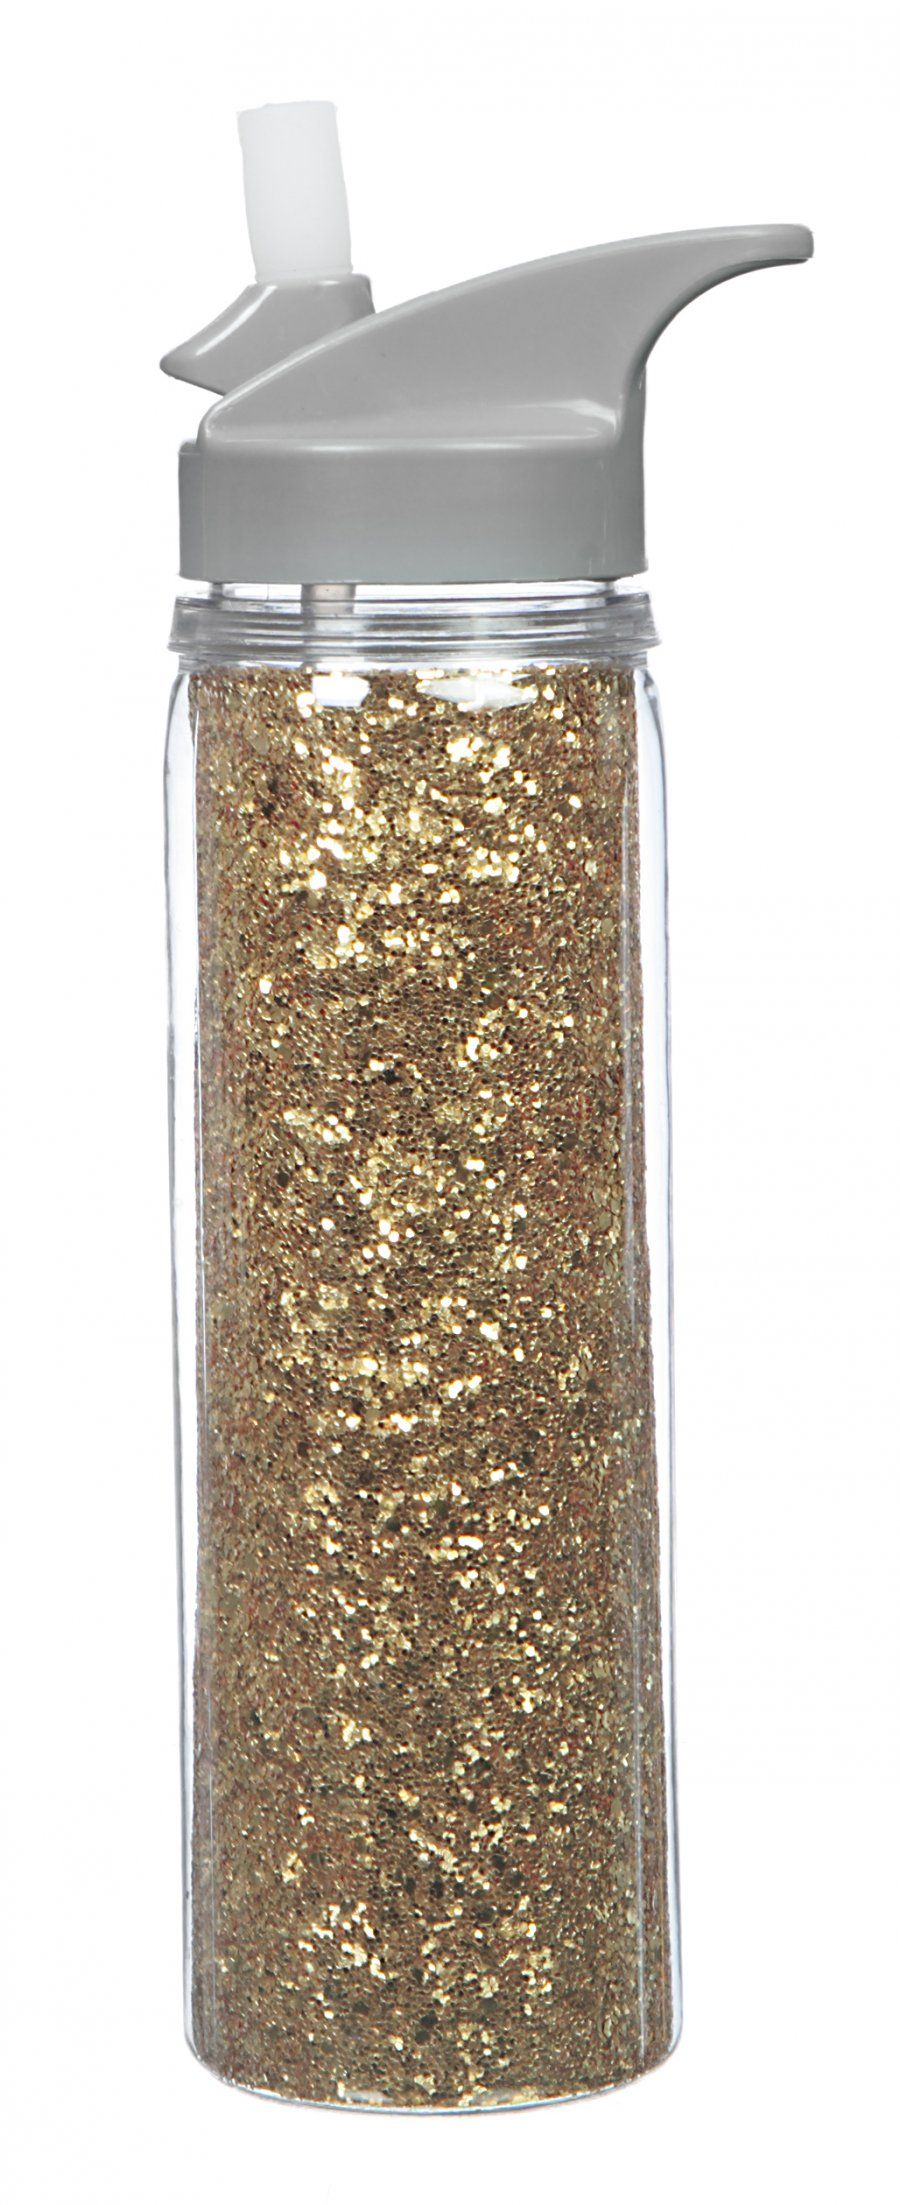 Acrylic Water Bottle - Gold Glitter   Glitter and Sparkles ...